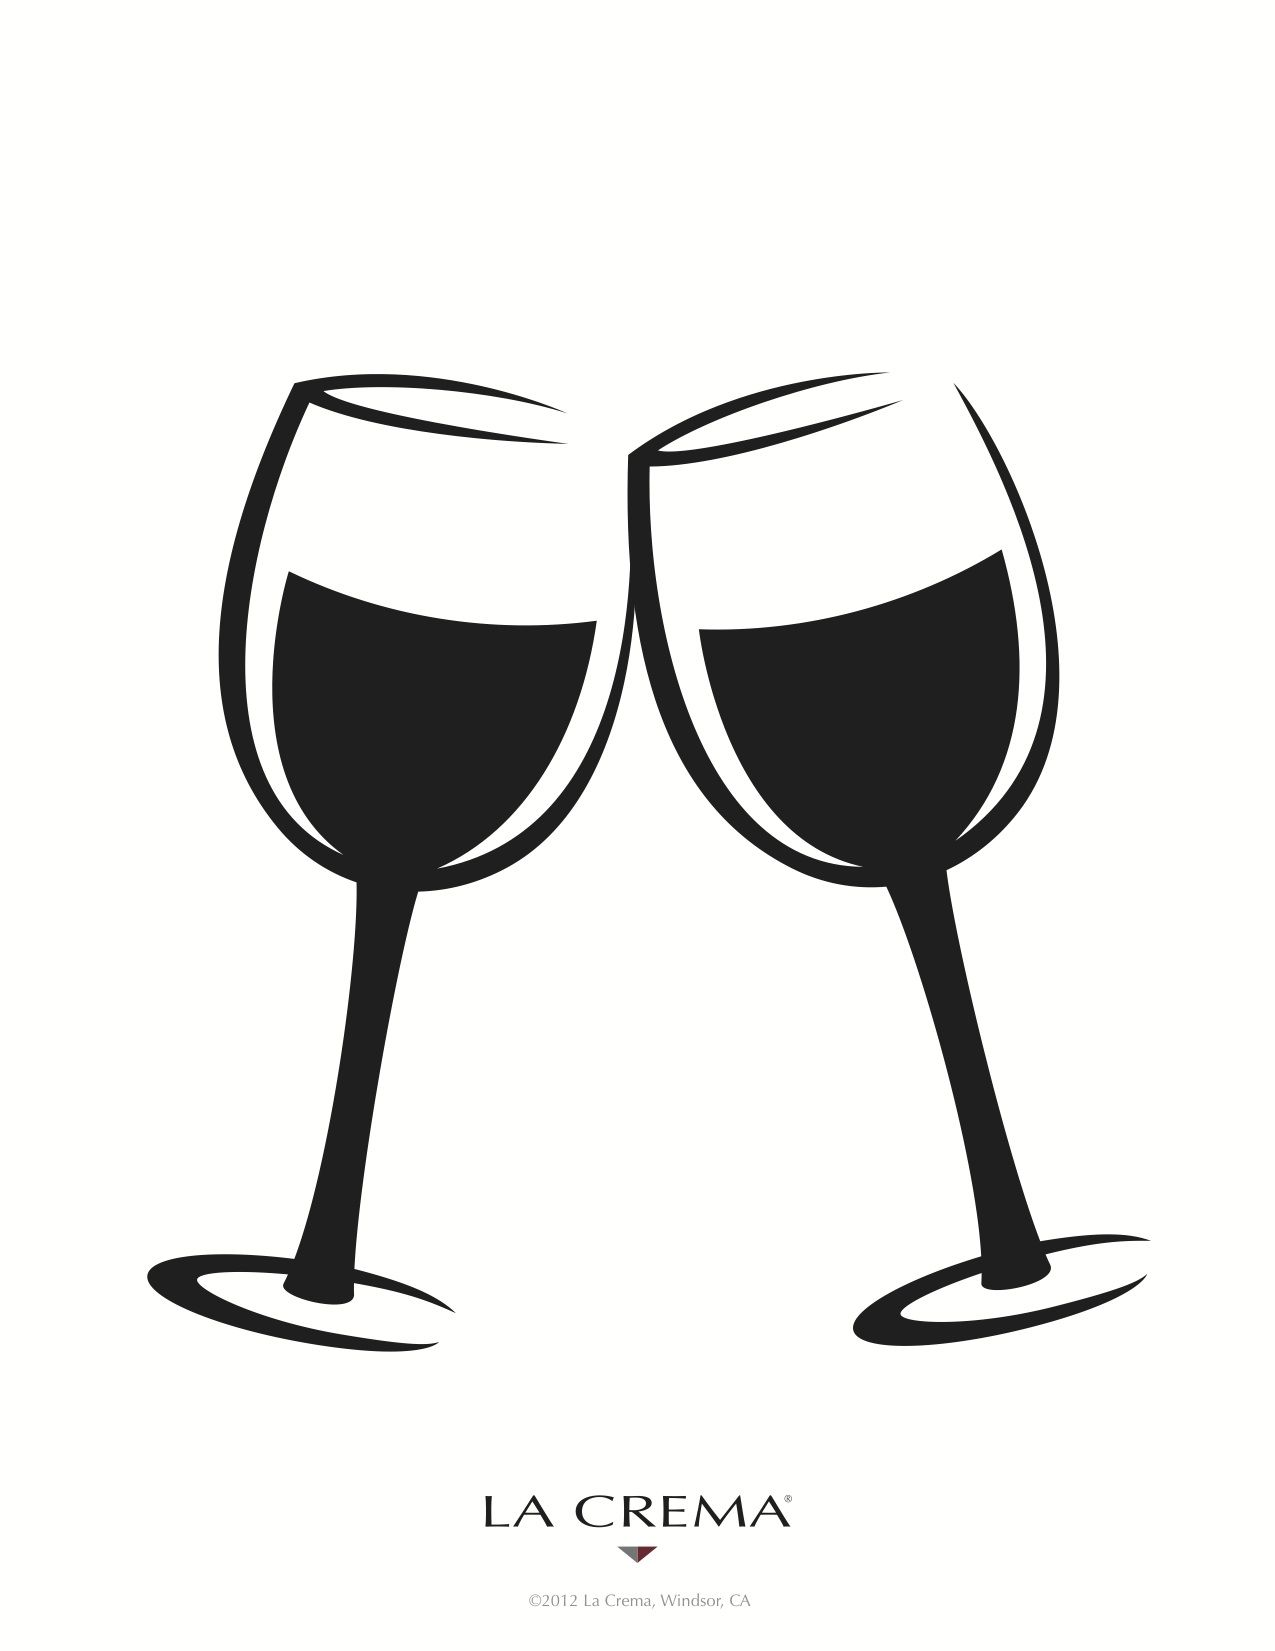 Remarkable image with regard to free printable wine glass stencils